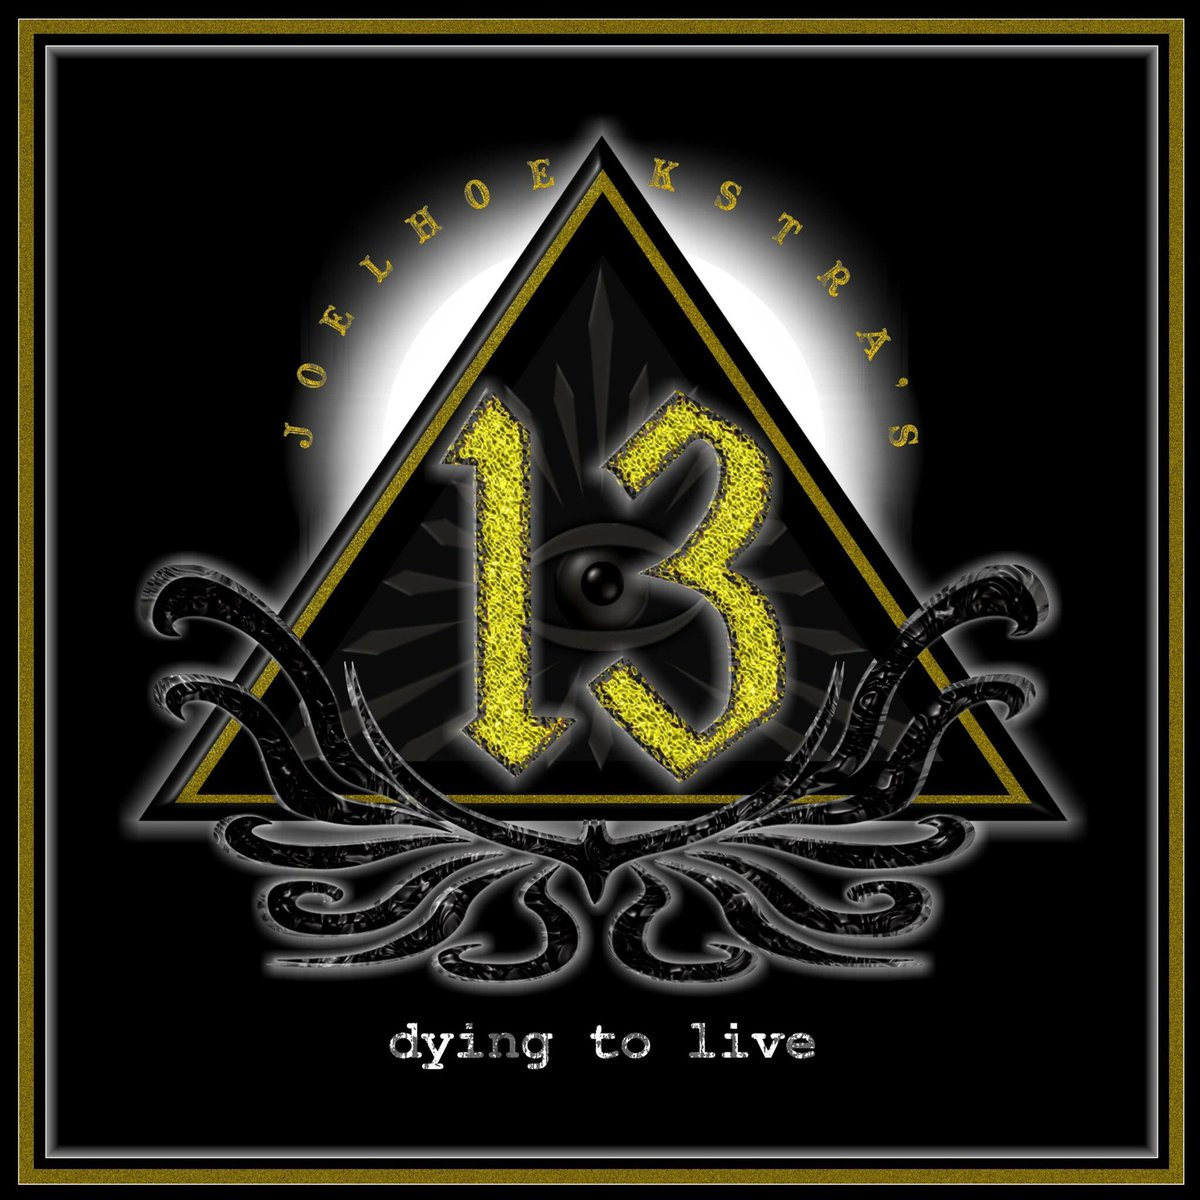 Happy Friday! Let&#39;s rock it with #JoelHoekstra13 #DyingToLive #KillOrBeKilled #TheBest #Joel #Solo   https:// youtu.be/DsRCQDVQX7I  &nbsp;  <br>http://pic.twitter.com/iKVOOs5mQd